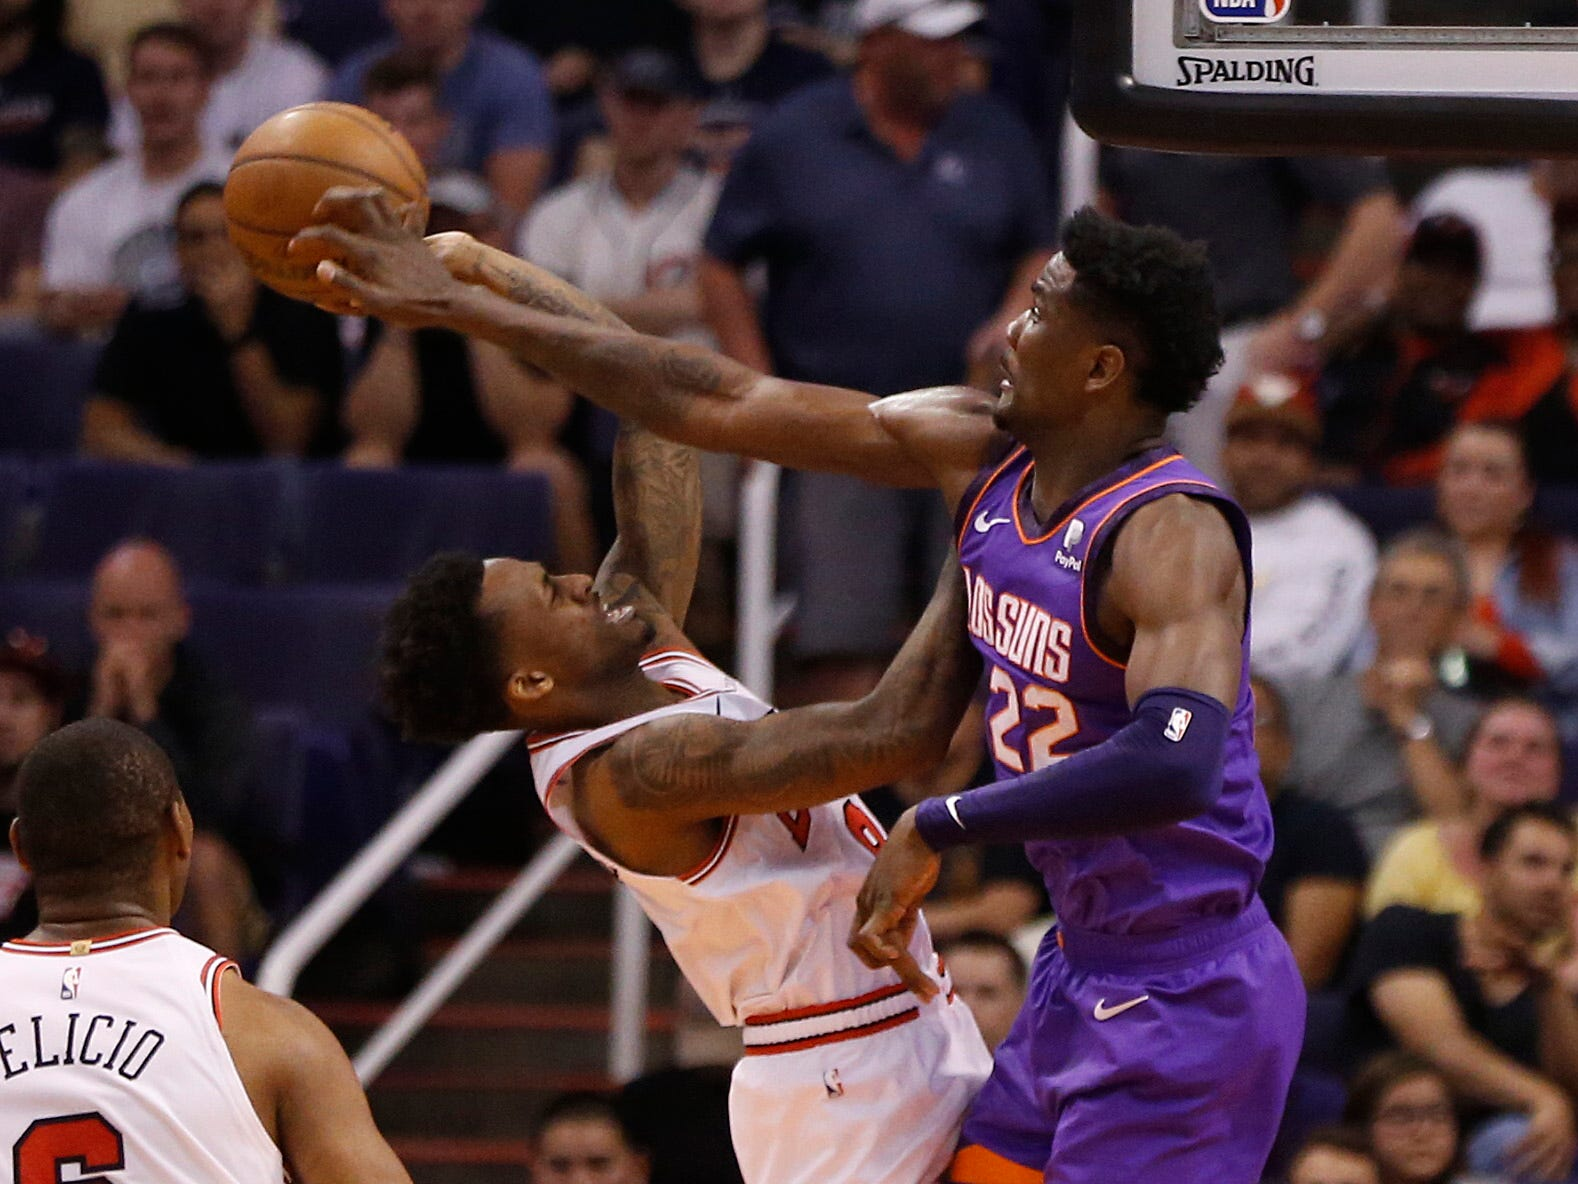 Suns' Deandre Ayton (22) blocks a shot against Bulls' Antonio Blakeney during the second half at Talking Stick Resort Arena in Phoenix, Ariz. on March 18, 2019.